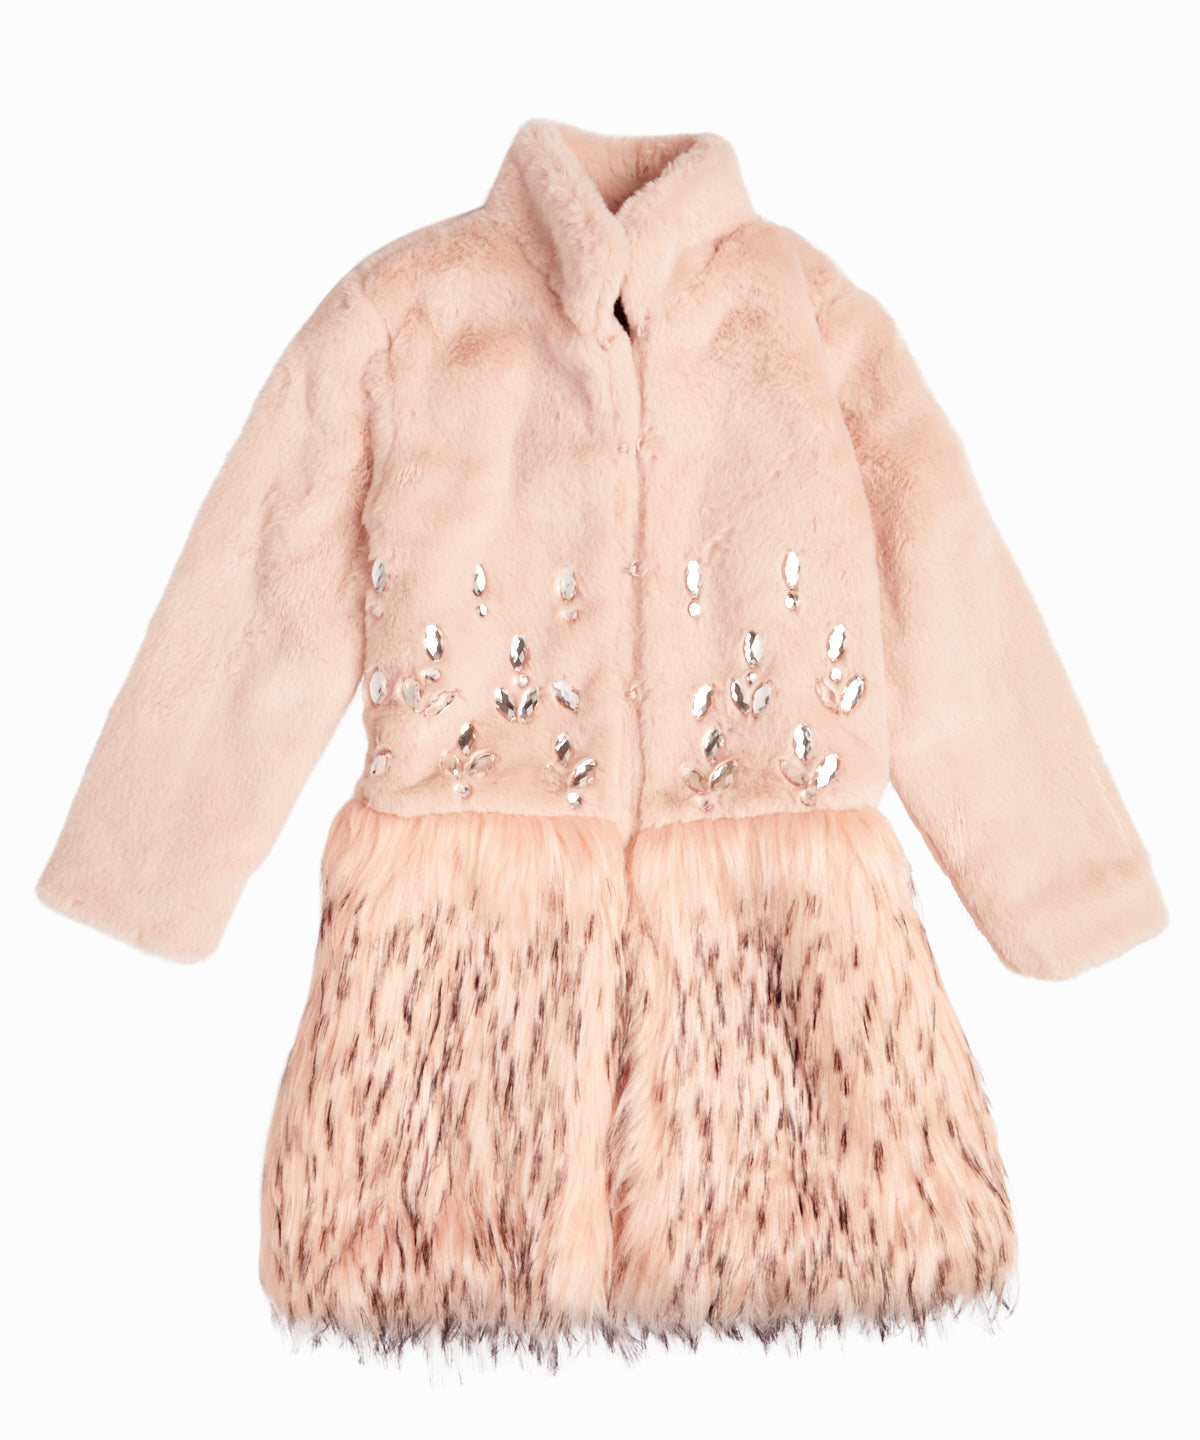 Flavia Bejeweled Faux Fur Pink Coat